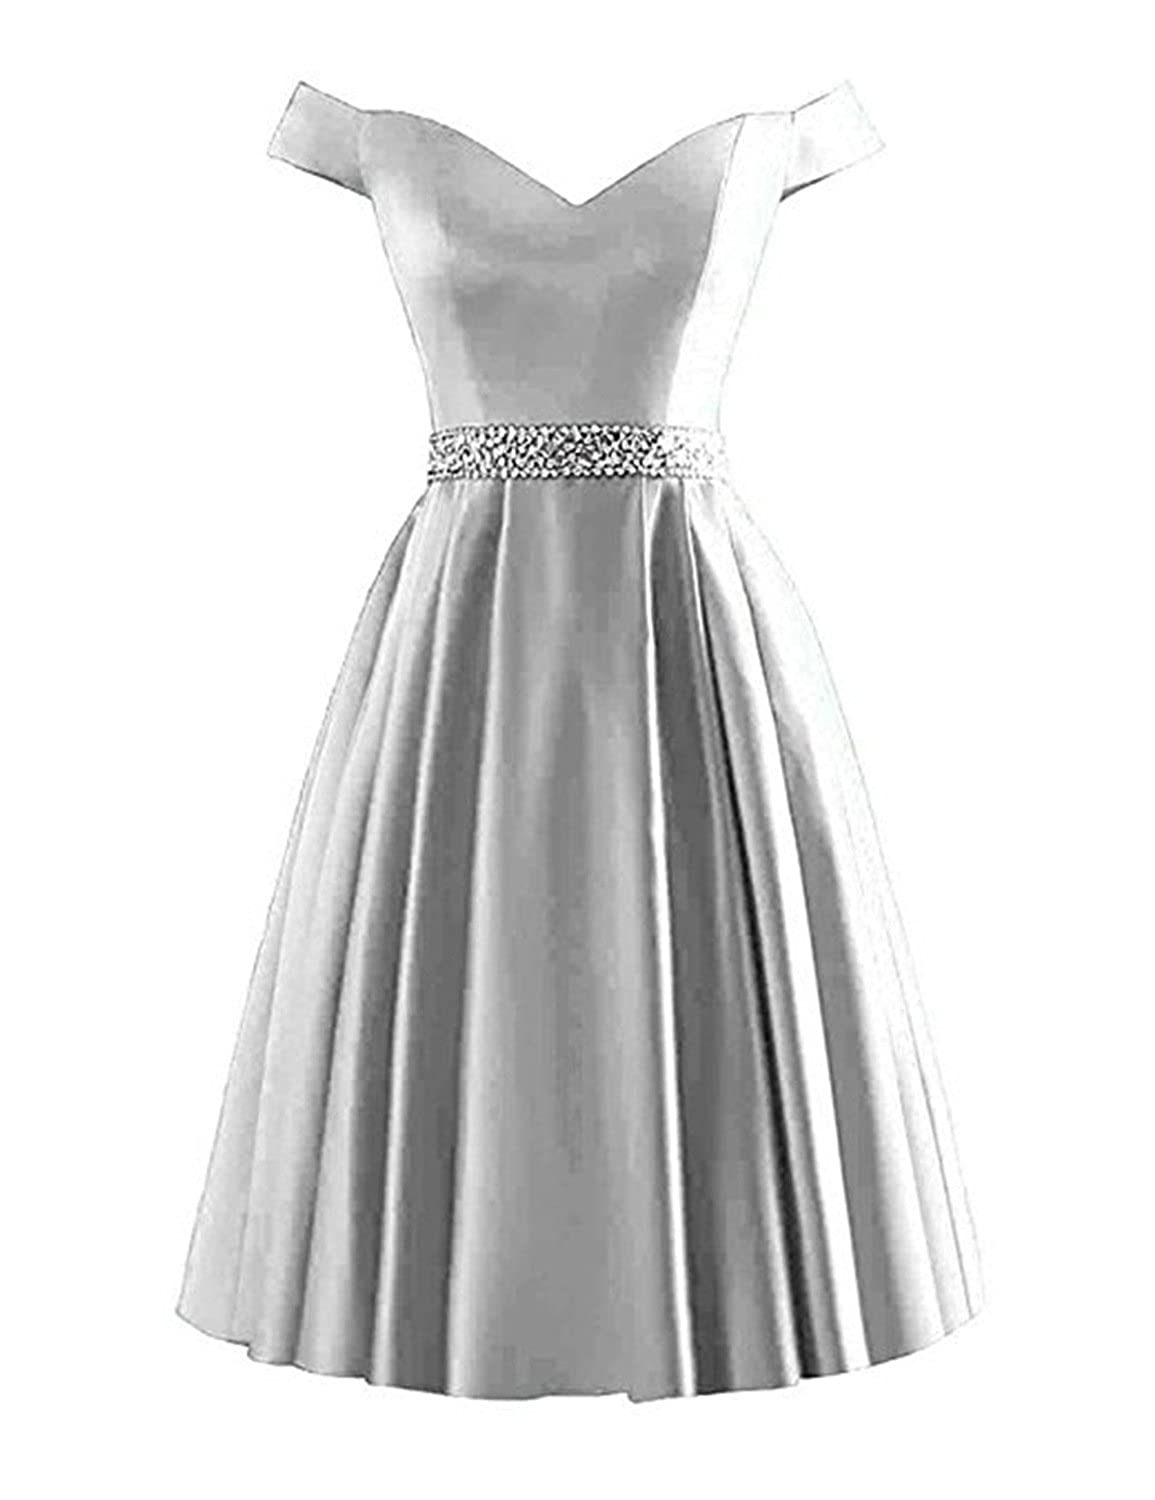 vimans Womens Satin Short Homecoming Dresses 2018 Off Shoulder Beading Prom Gown Dress5210